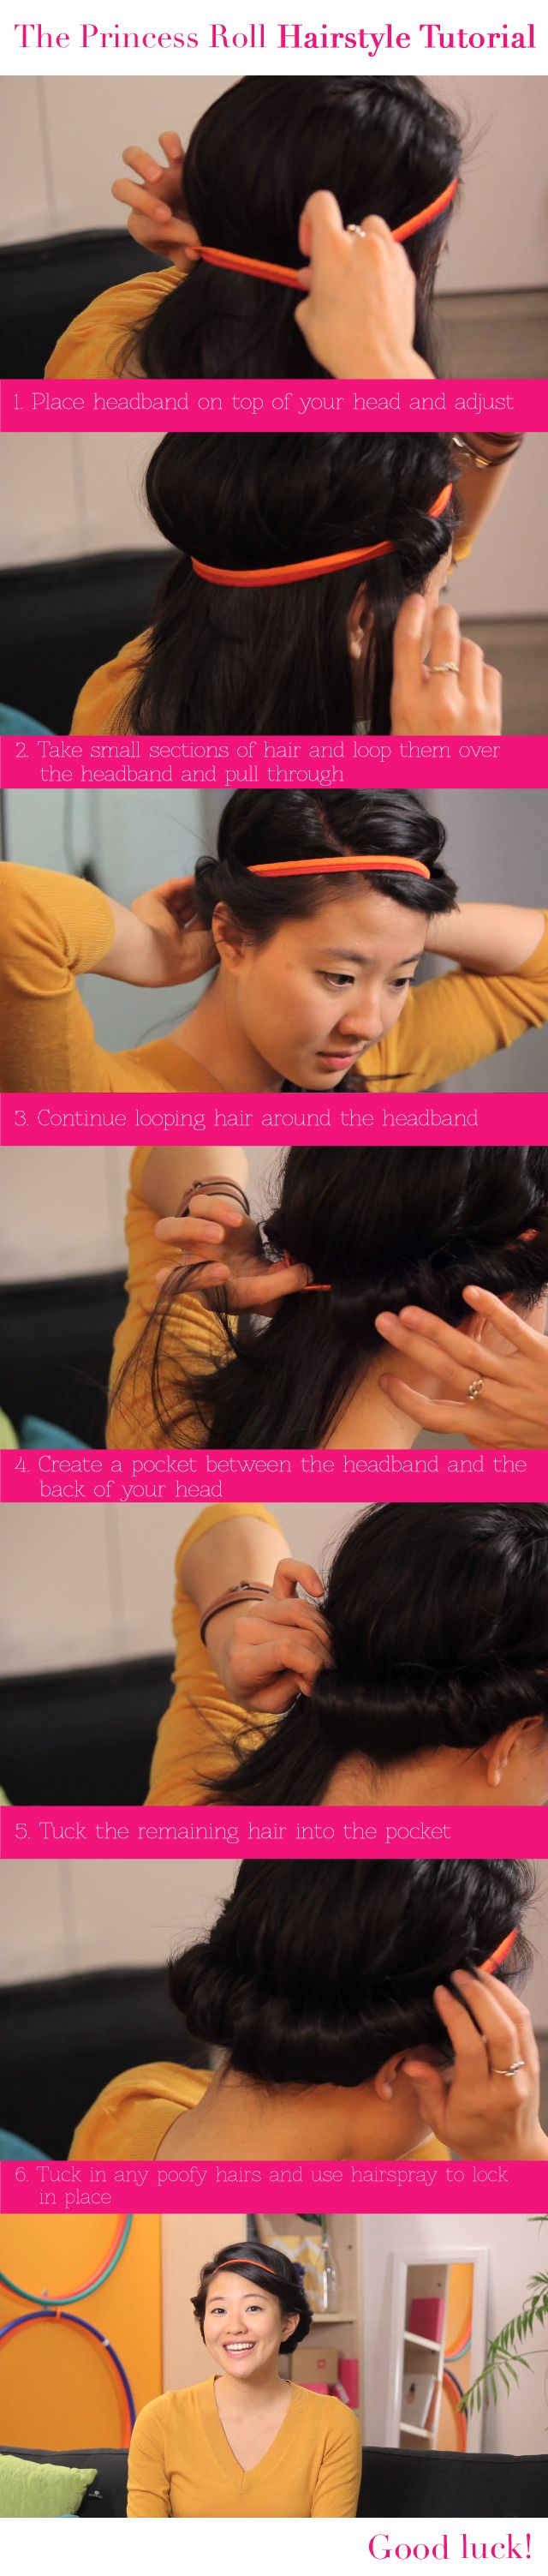 The Princess Roll Hairstyle Tutorial - You know, because I'm such a princess.